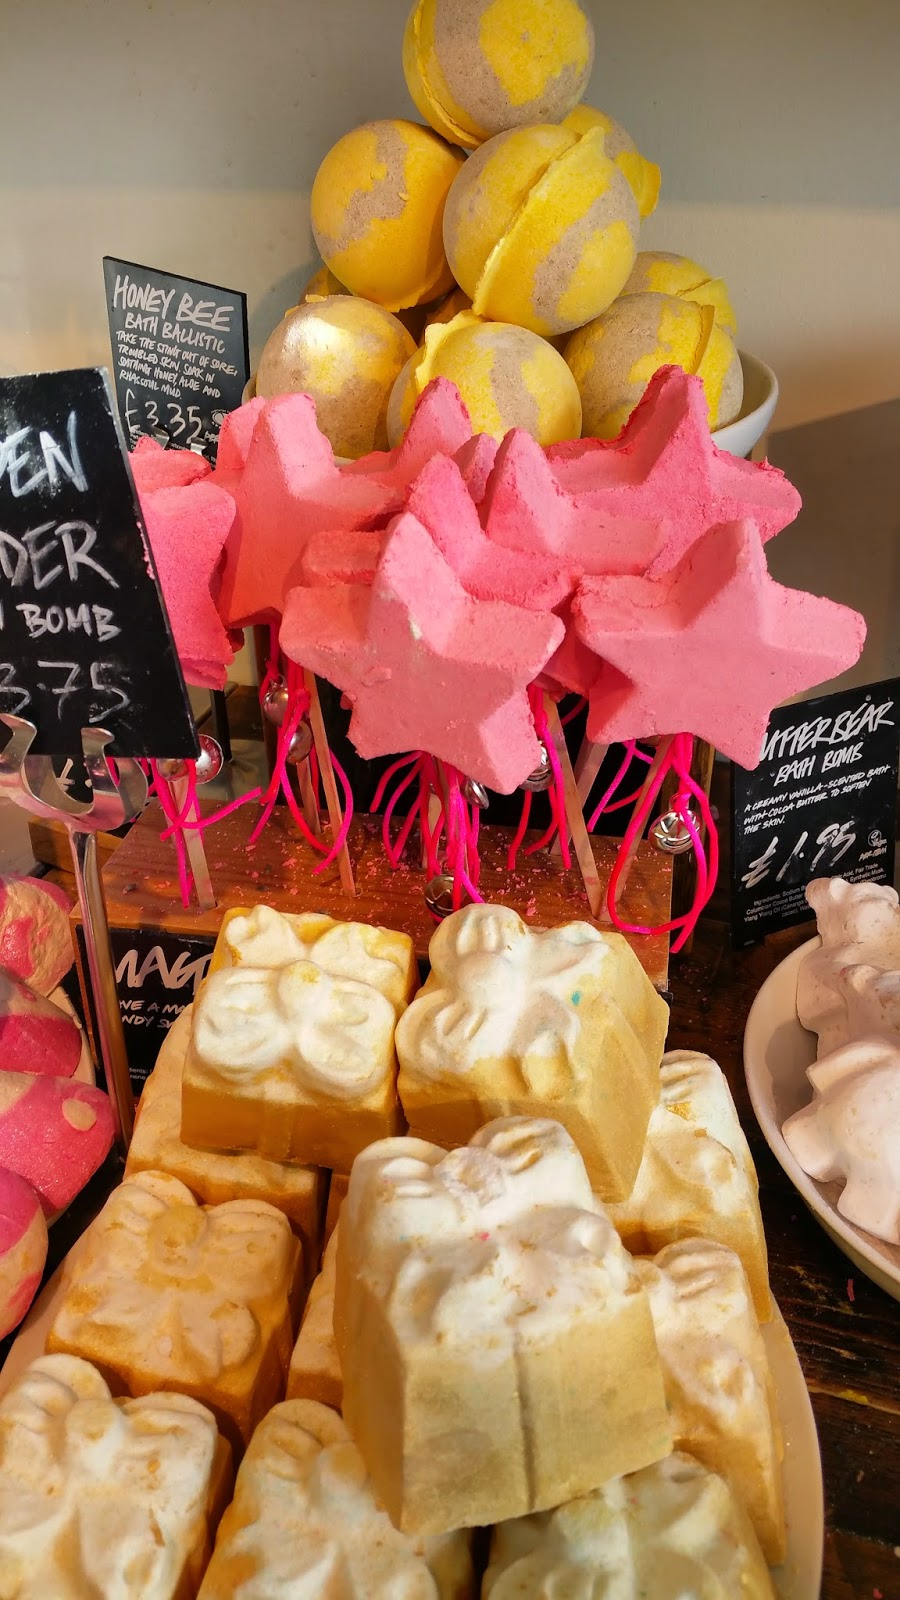 Christmas Time at Lush – Butterbears & Snow Fairies